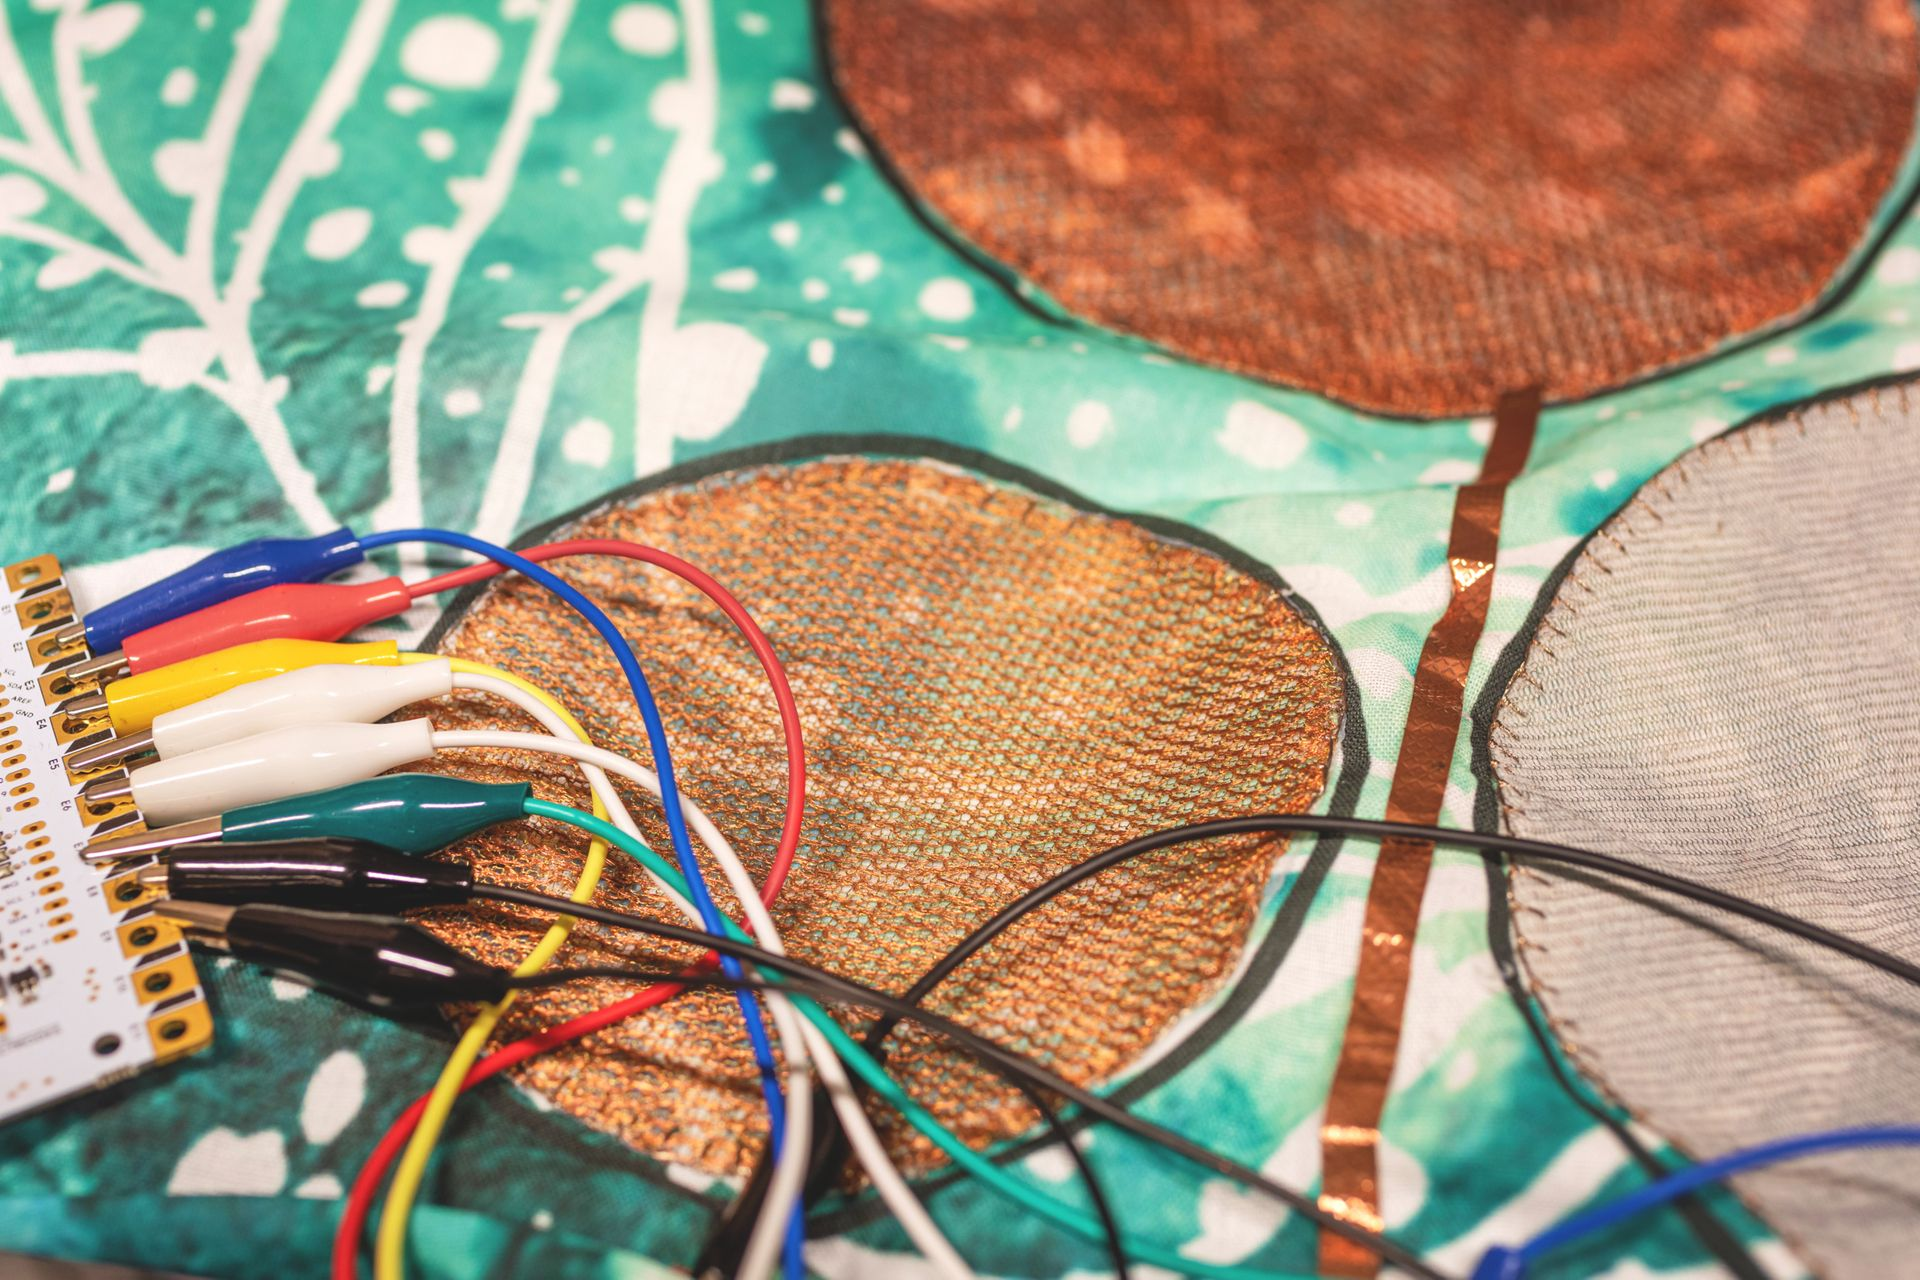 Copper wires weaved into blue textiles.